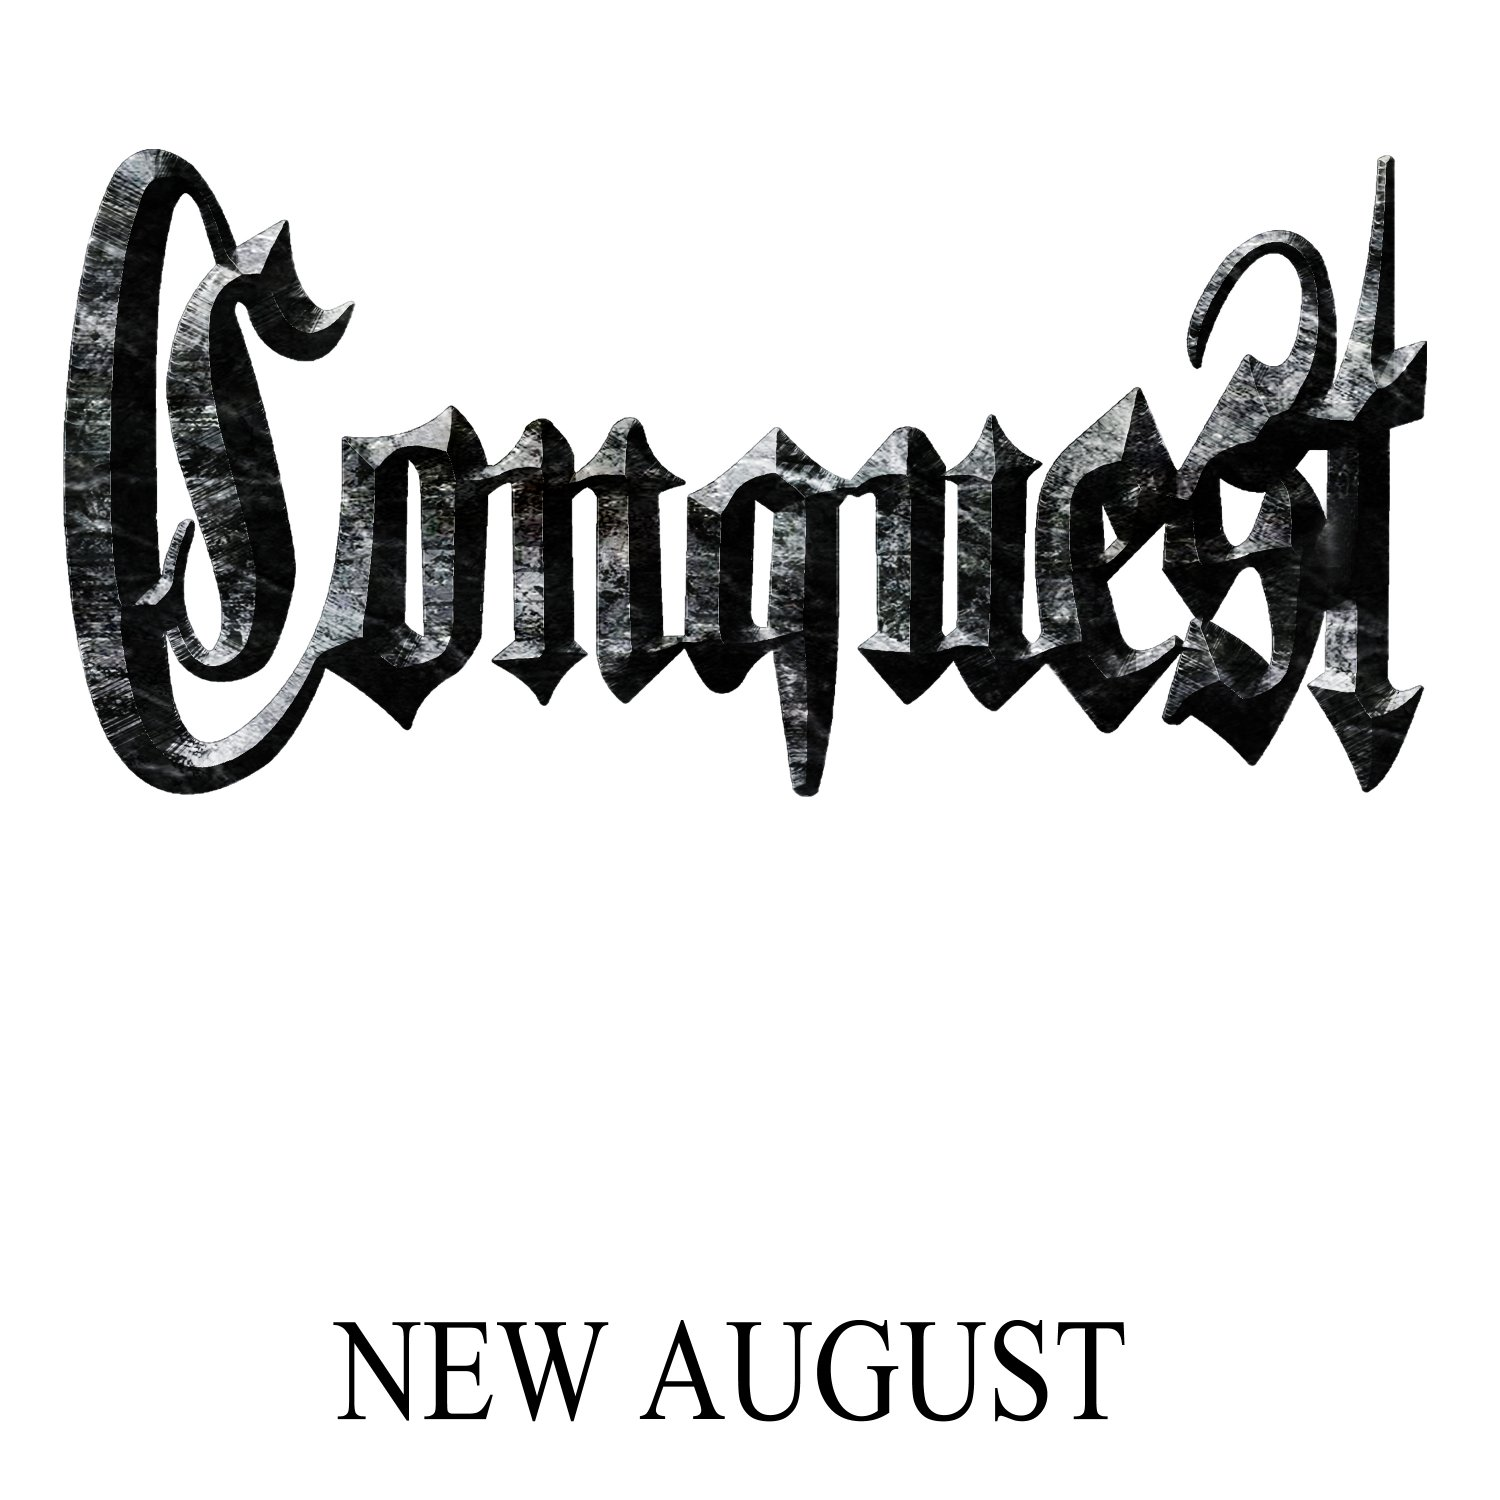 New August by Conquest USB Wristband